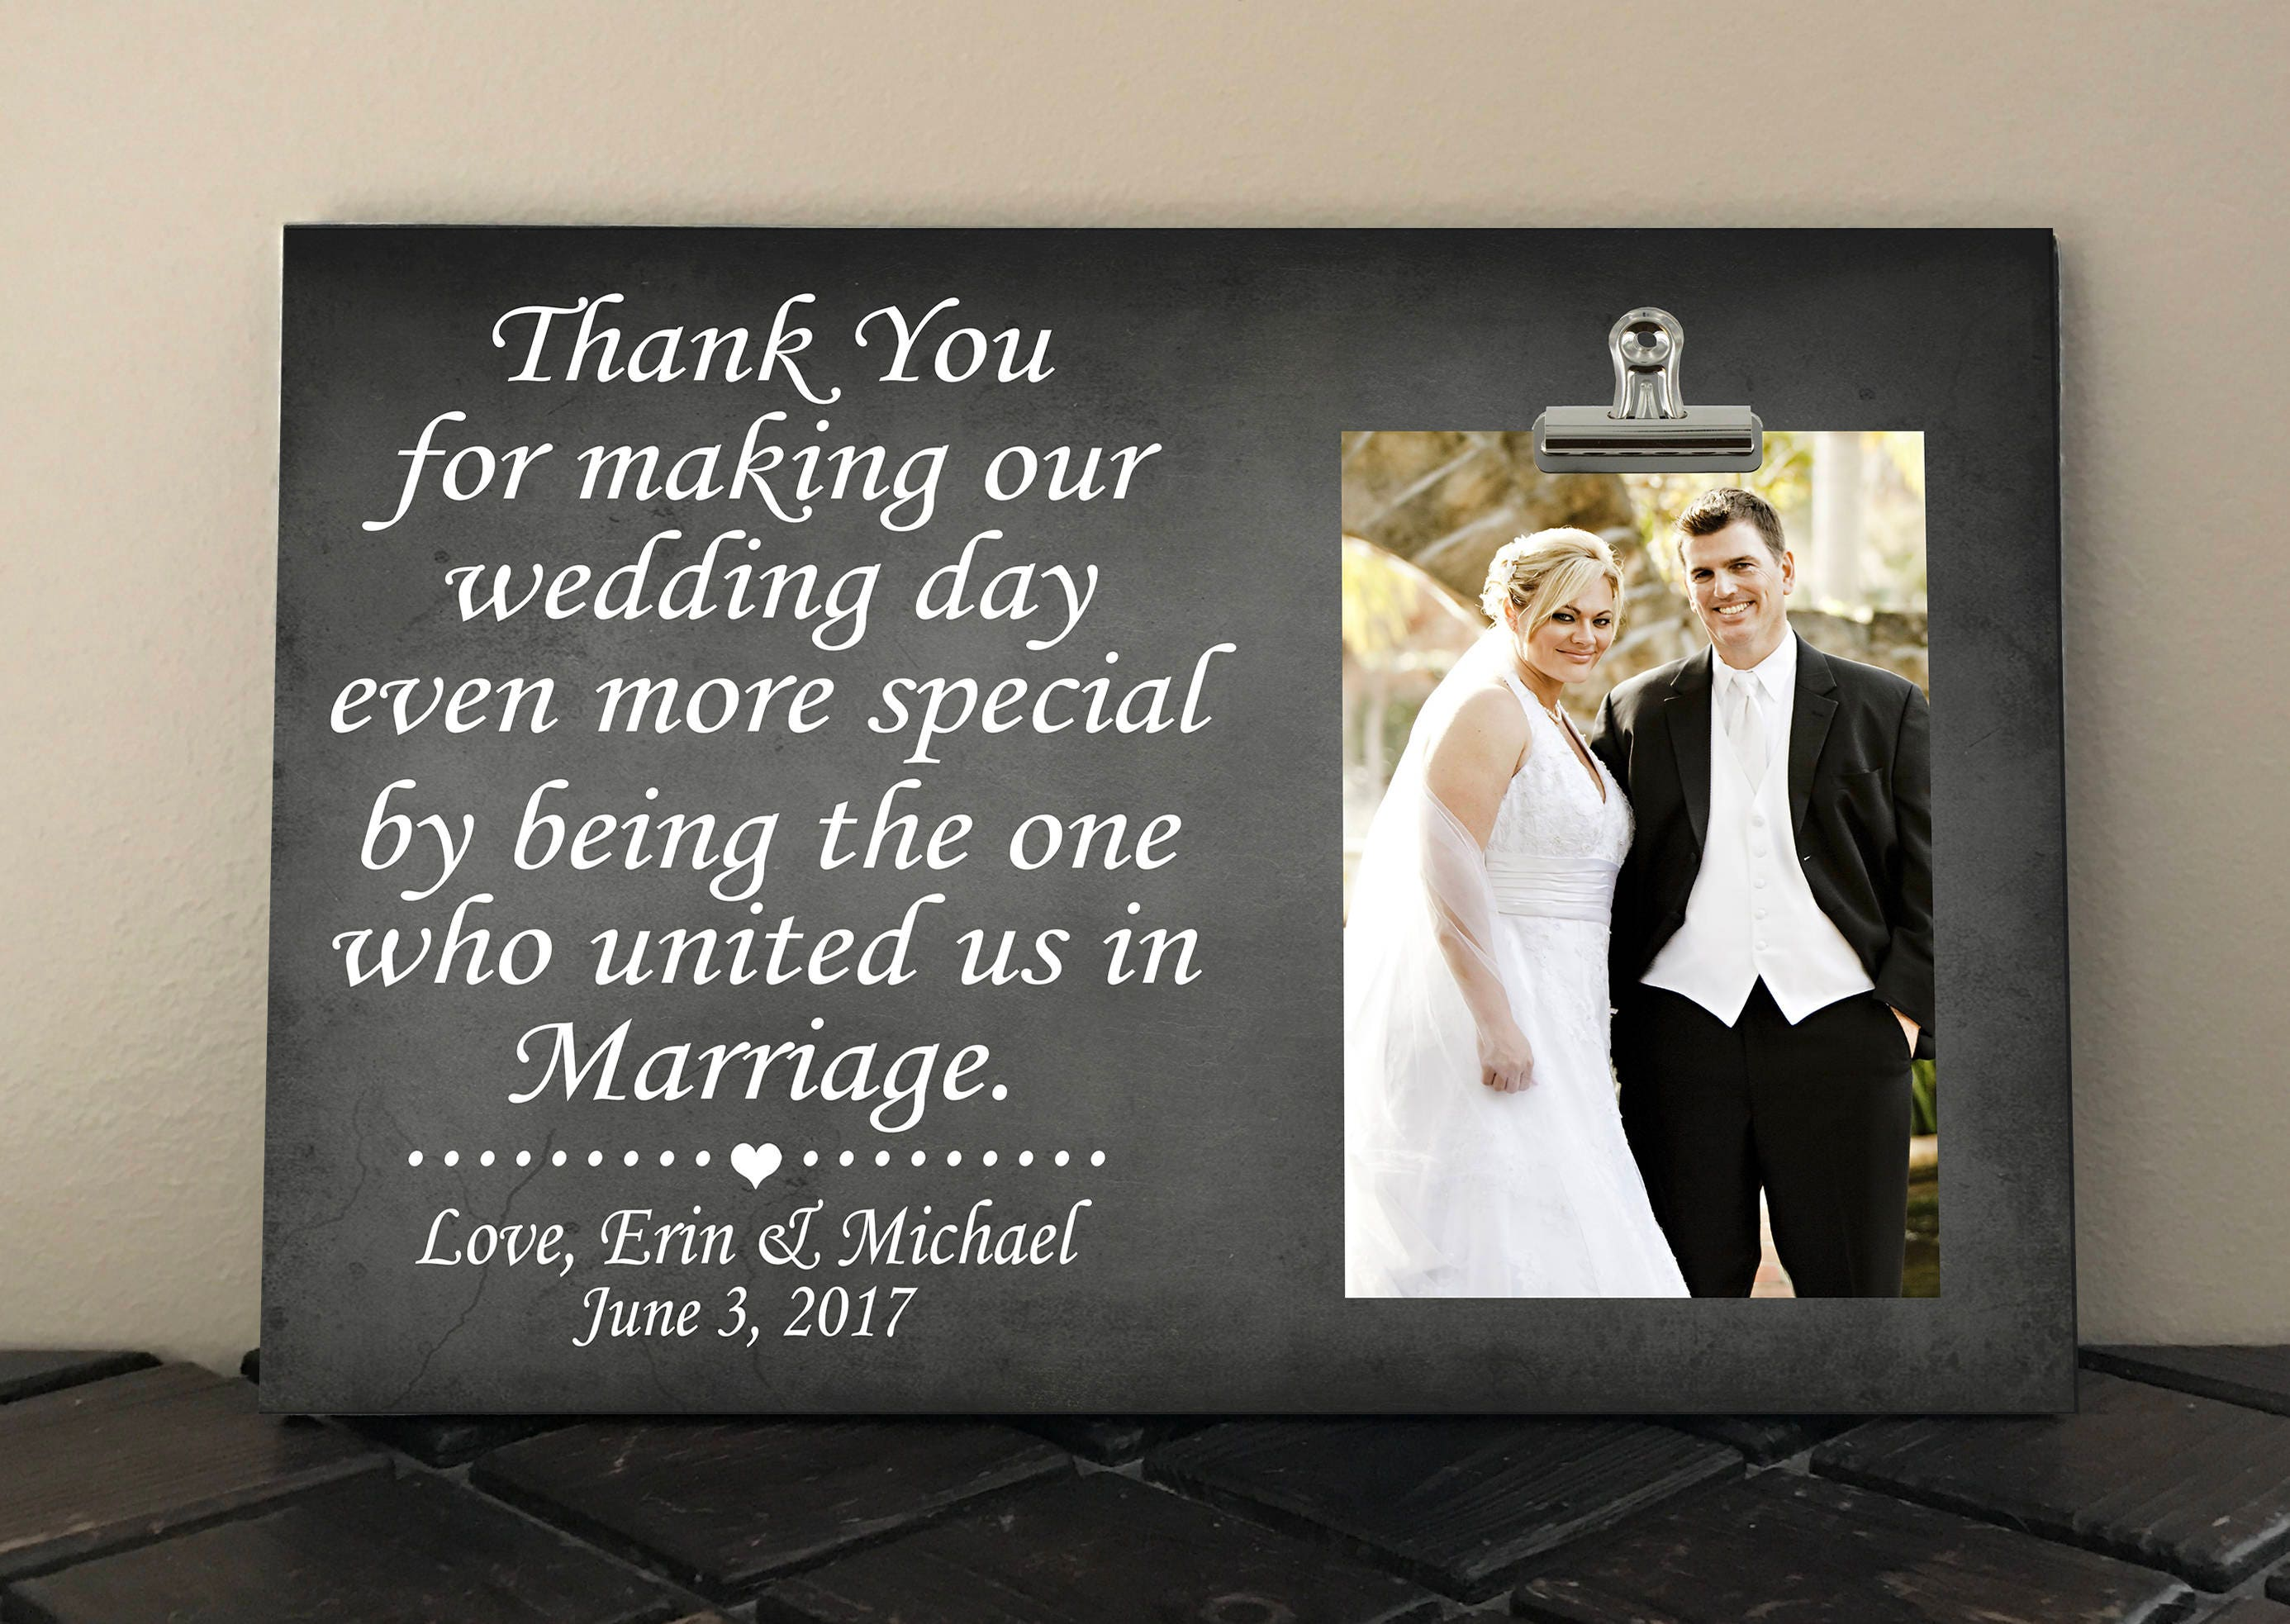 Wedding Officiant Gift Ideas: Free Design Proof And Personalization WEDDING OFFICIANT GIFT